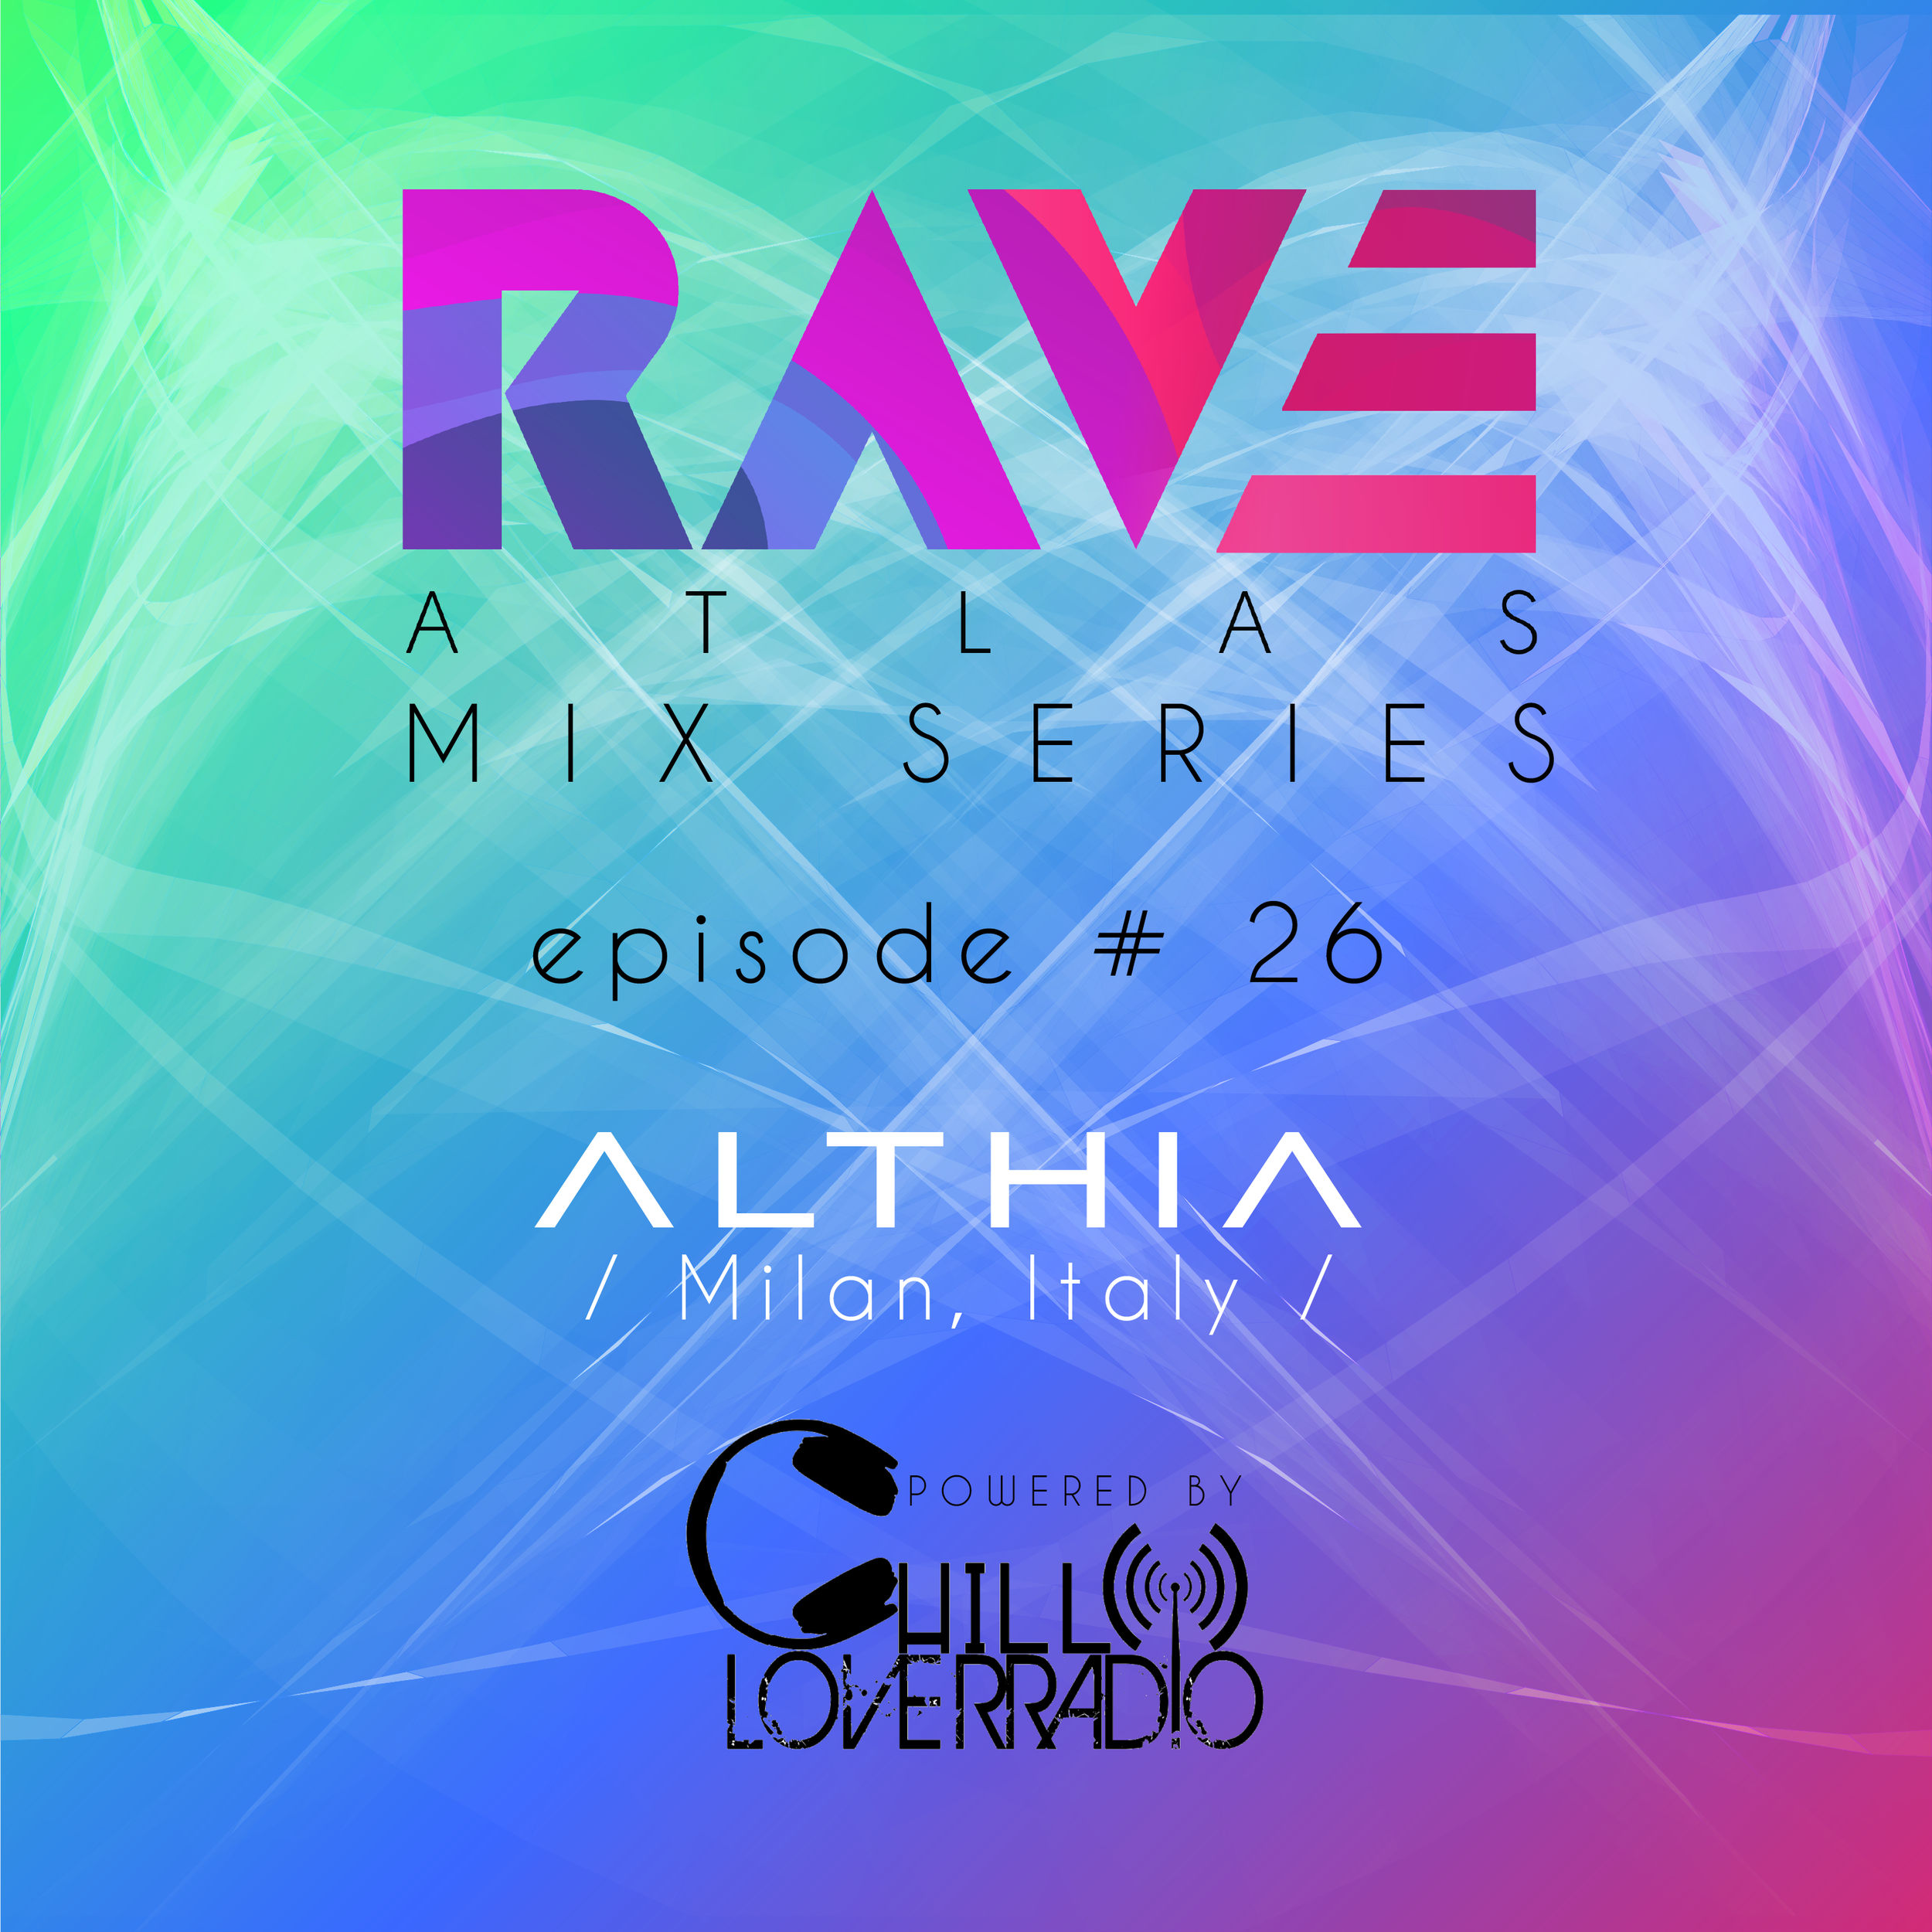 RAVE ATLAS MIX SERIES EP 026 - Milan, Italy